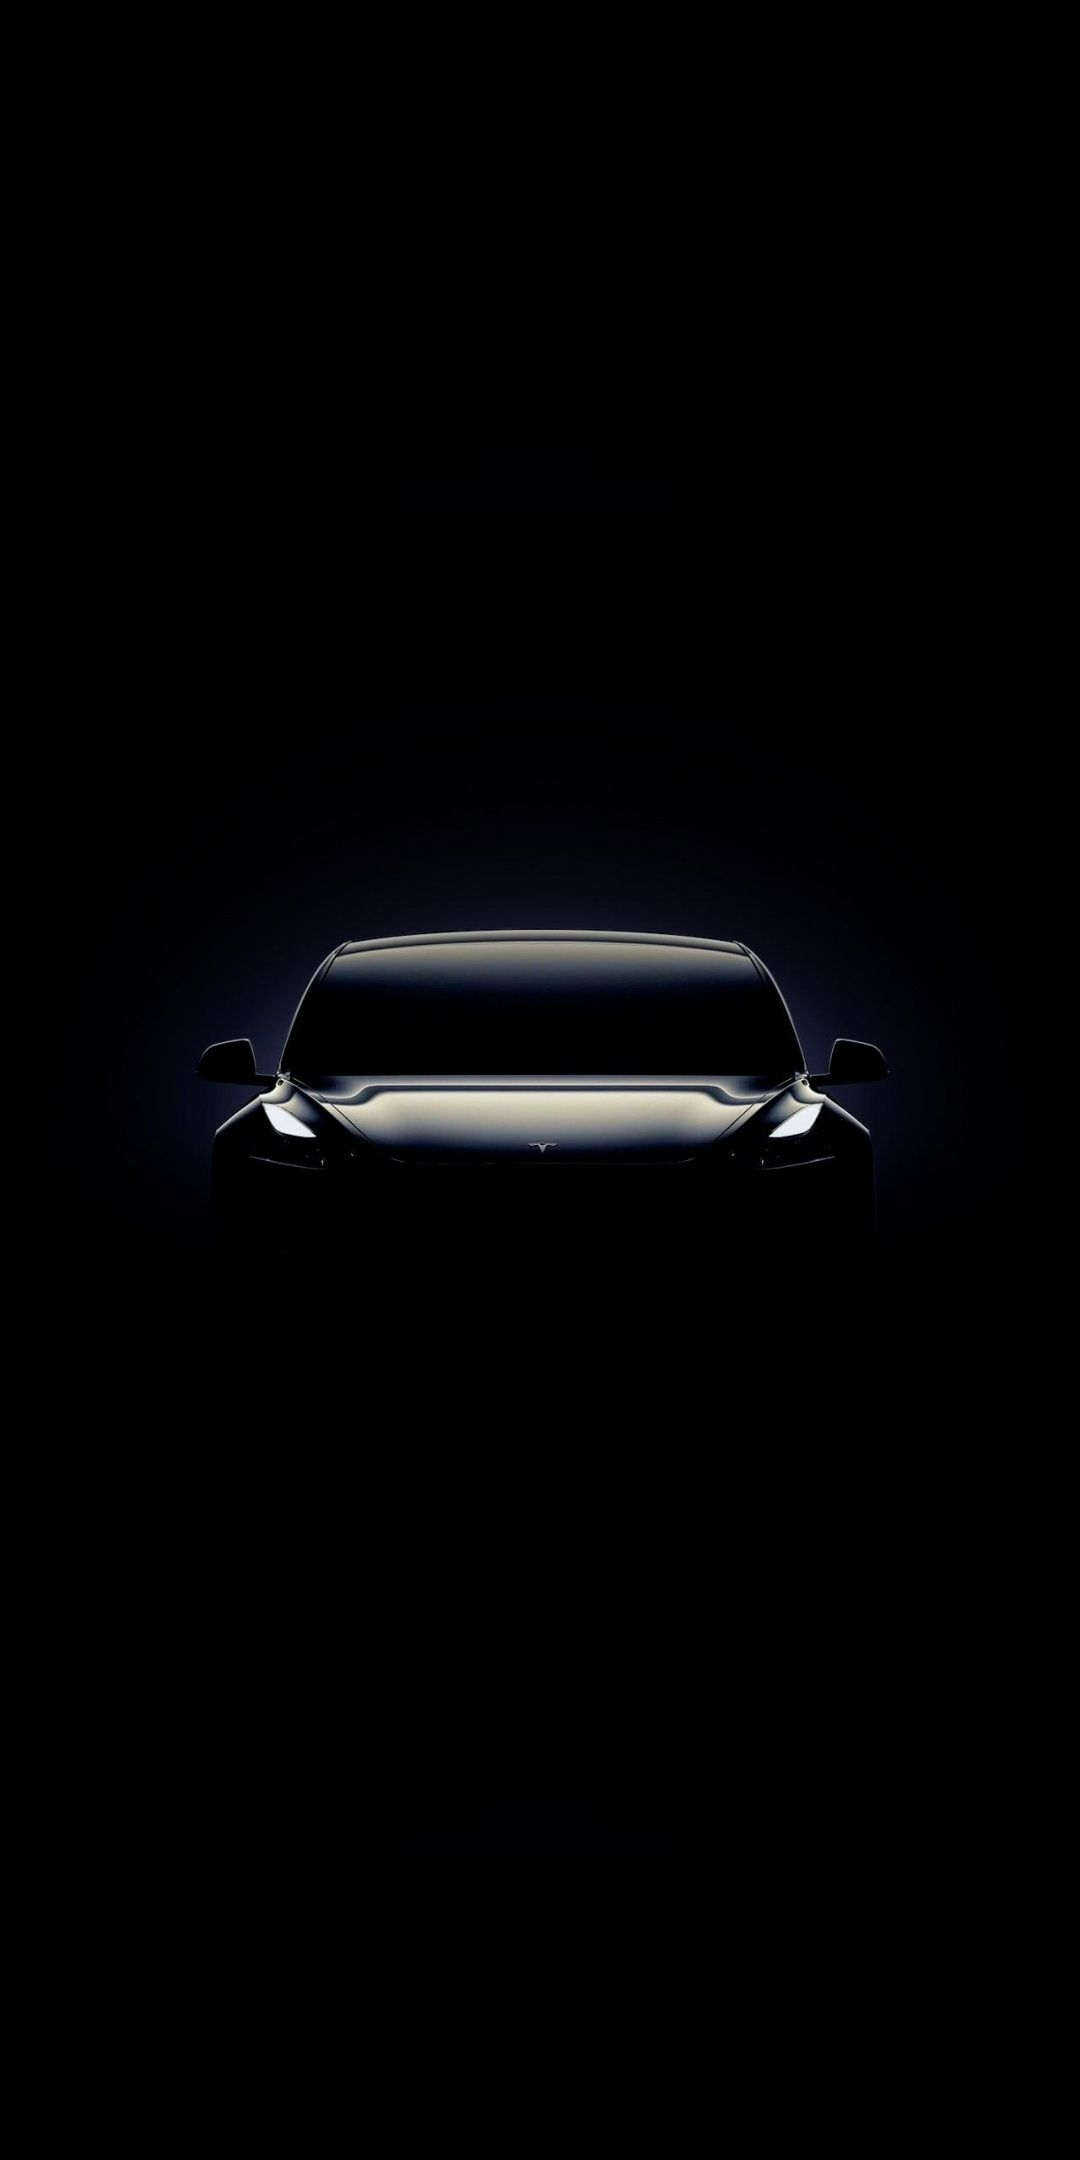 Tesla Model 3 Portrait 1080x2160 Wallpaper Tesla Model Tesla Model X Tesla